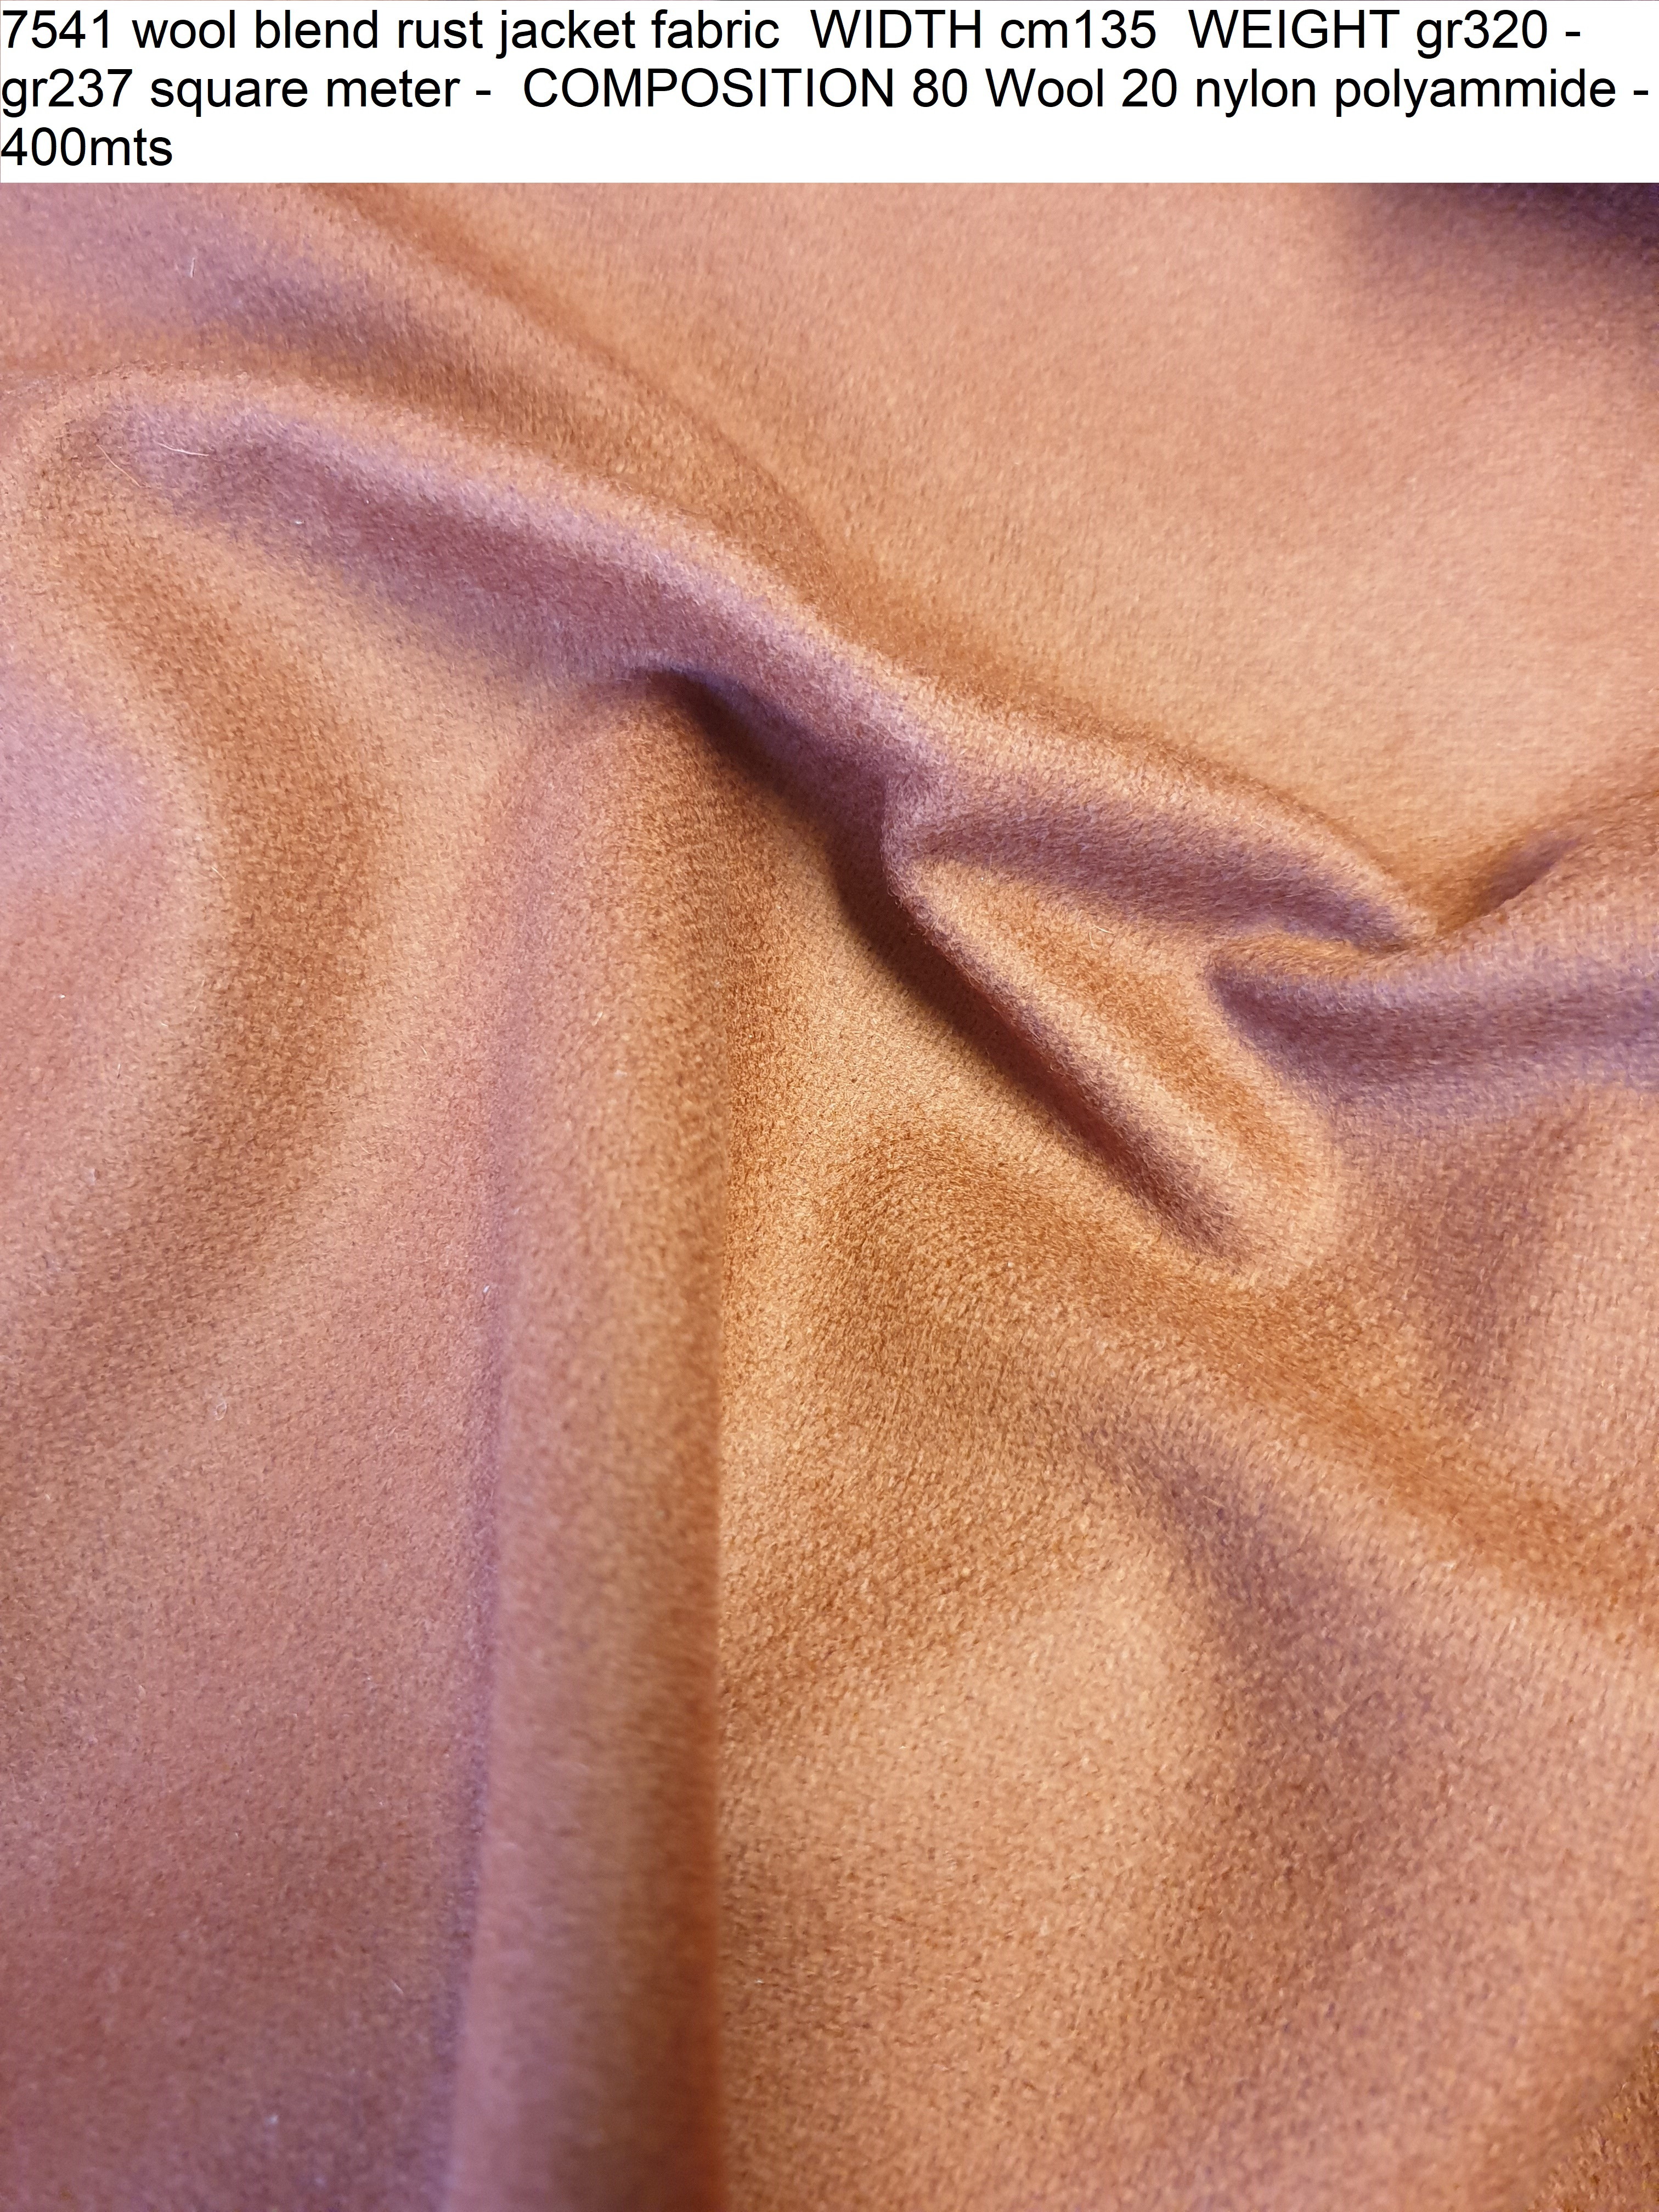 7541 wool blend rust jacket fabric WIDTH cm135 WEIGHT gr320 - gr237 square meter - COMPOSITION 80 Wool 20 nylon polyammide - 400mts